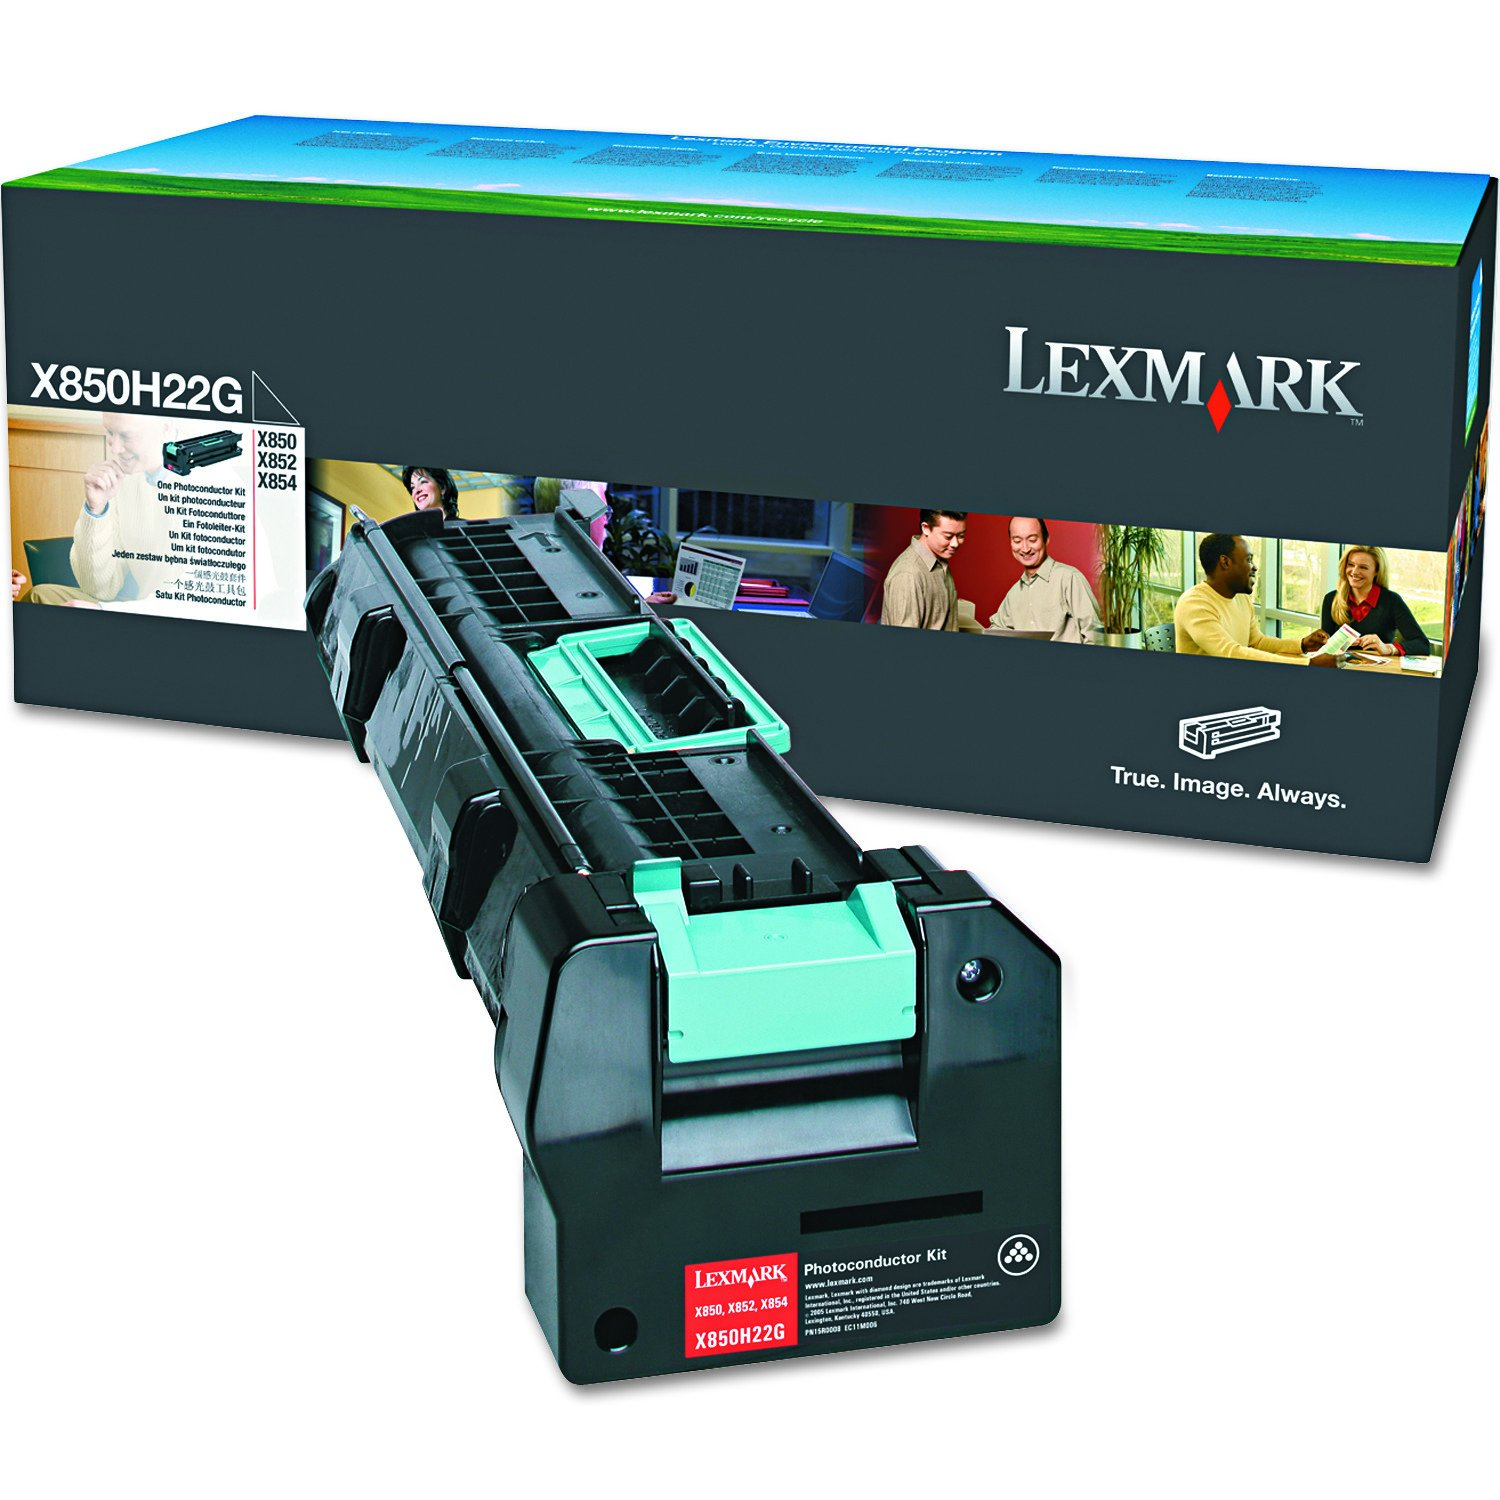 Lexmark X850H22G Photoconductor Unit for X850e, X852e & X854e by Lexmark